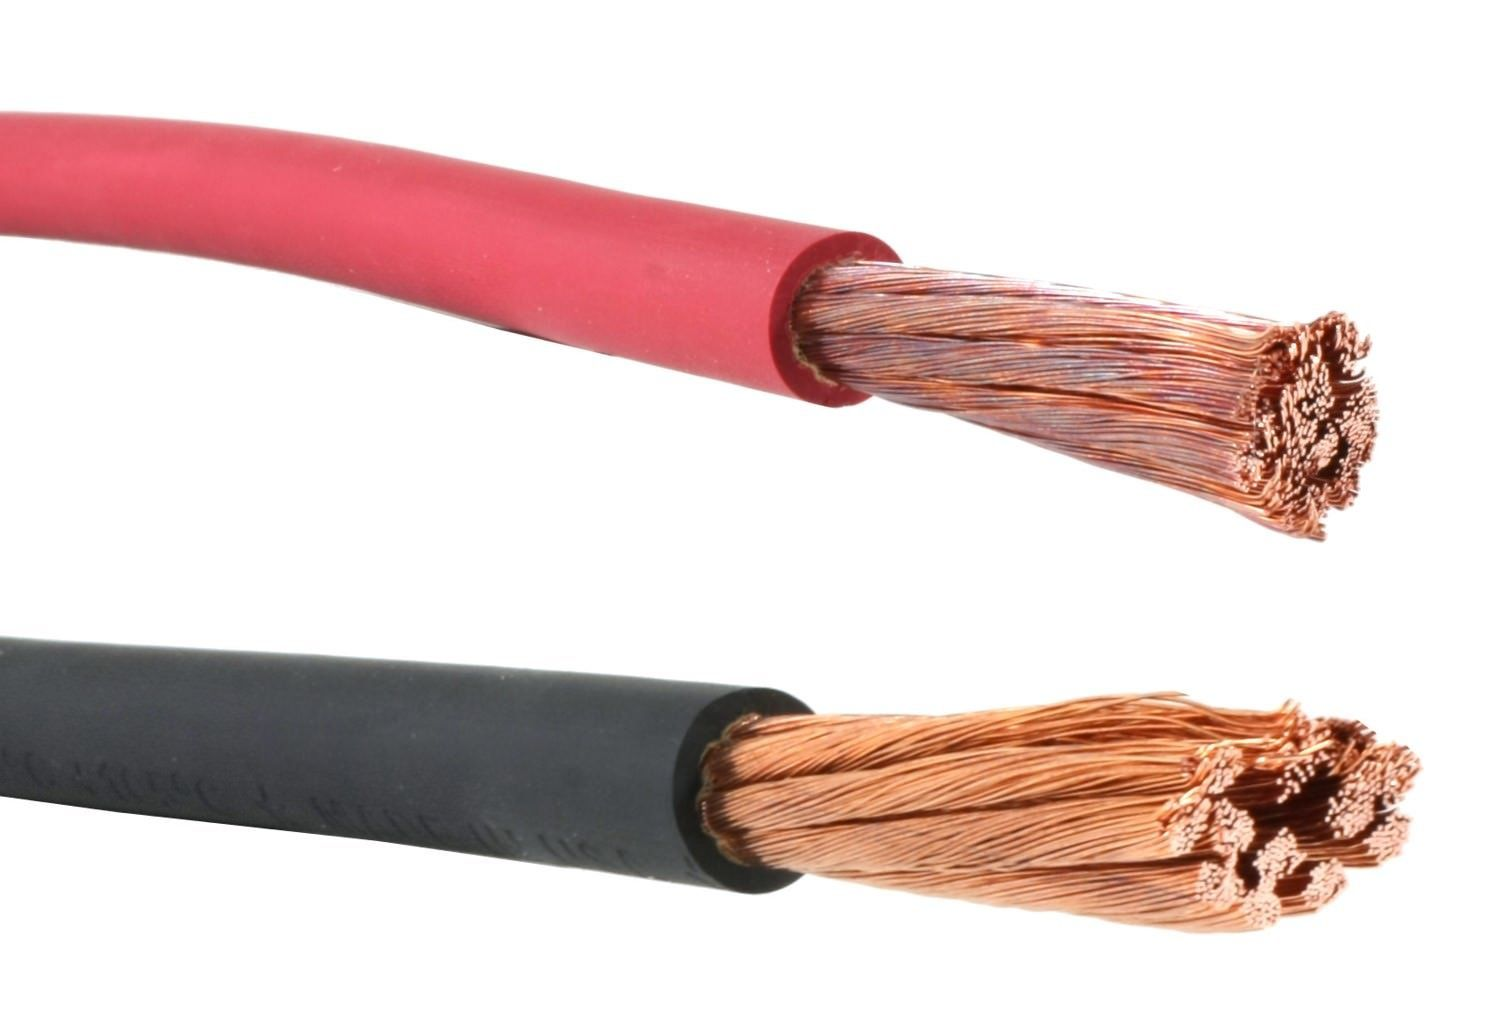 2 Gauge Awg Flexaprene Welding Battery Cable Black And Red 600 V Made In Usa 100 Feet Of Each Color You Electrical Equipment Black And Red Rolling Pin